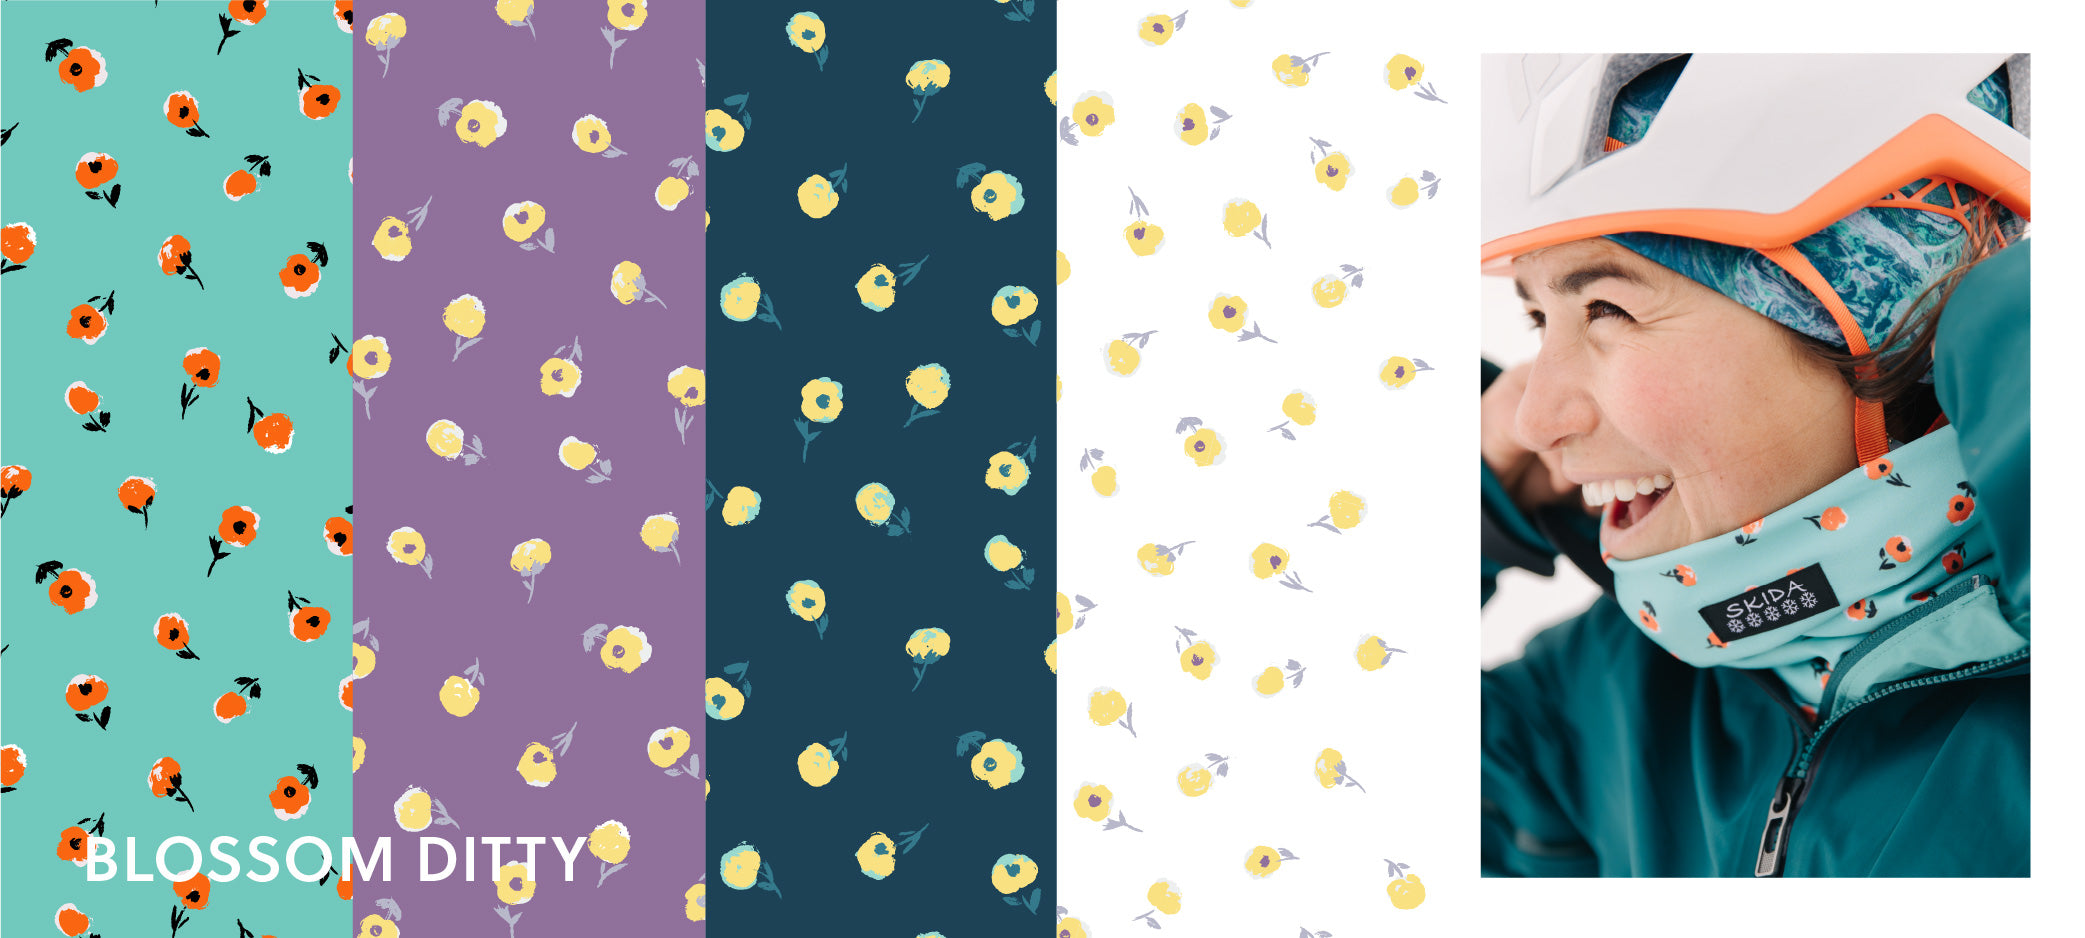 Shop the Blossom Ditty Collection